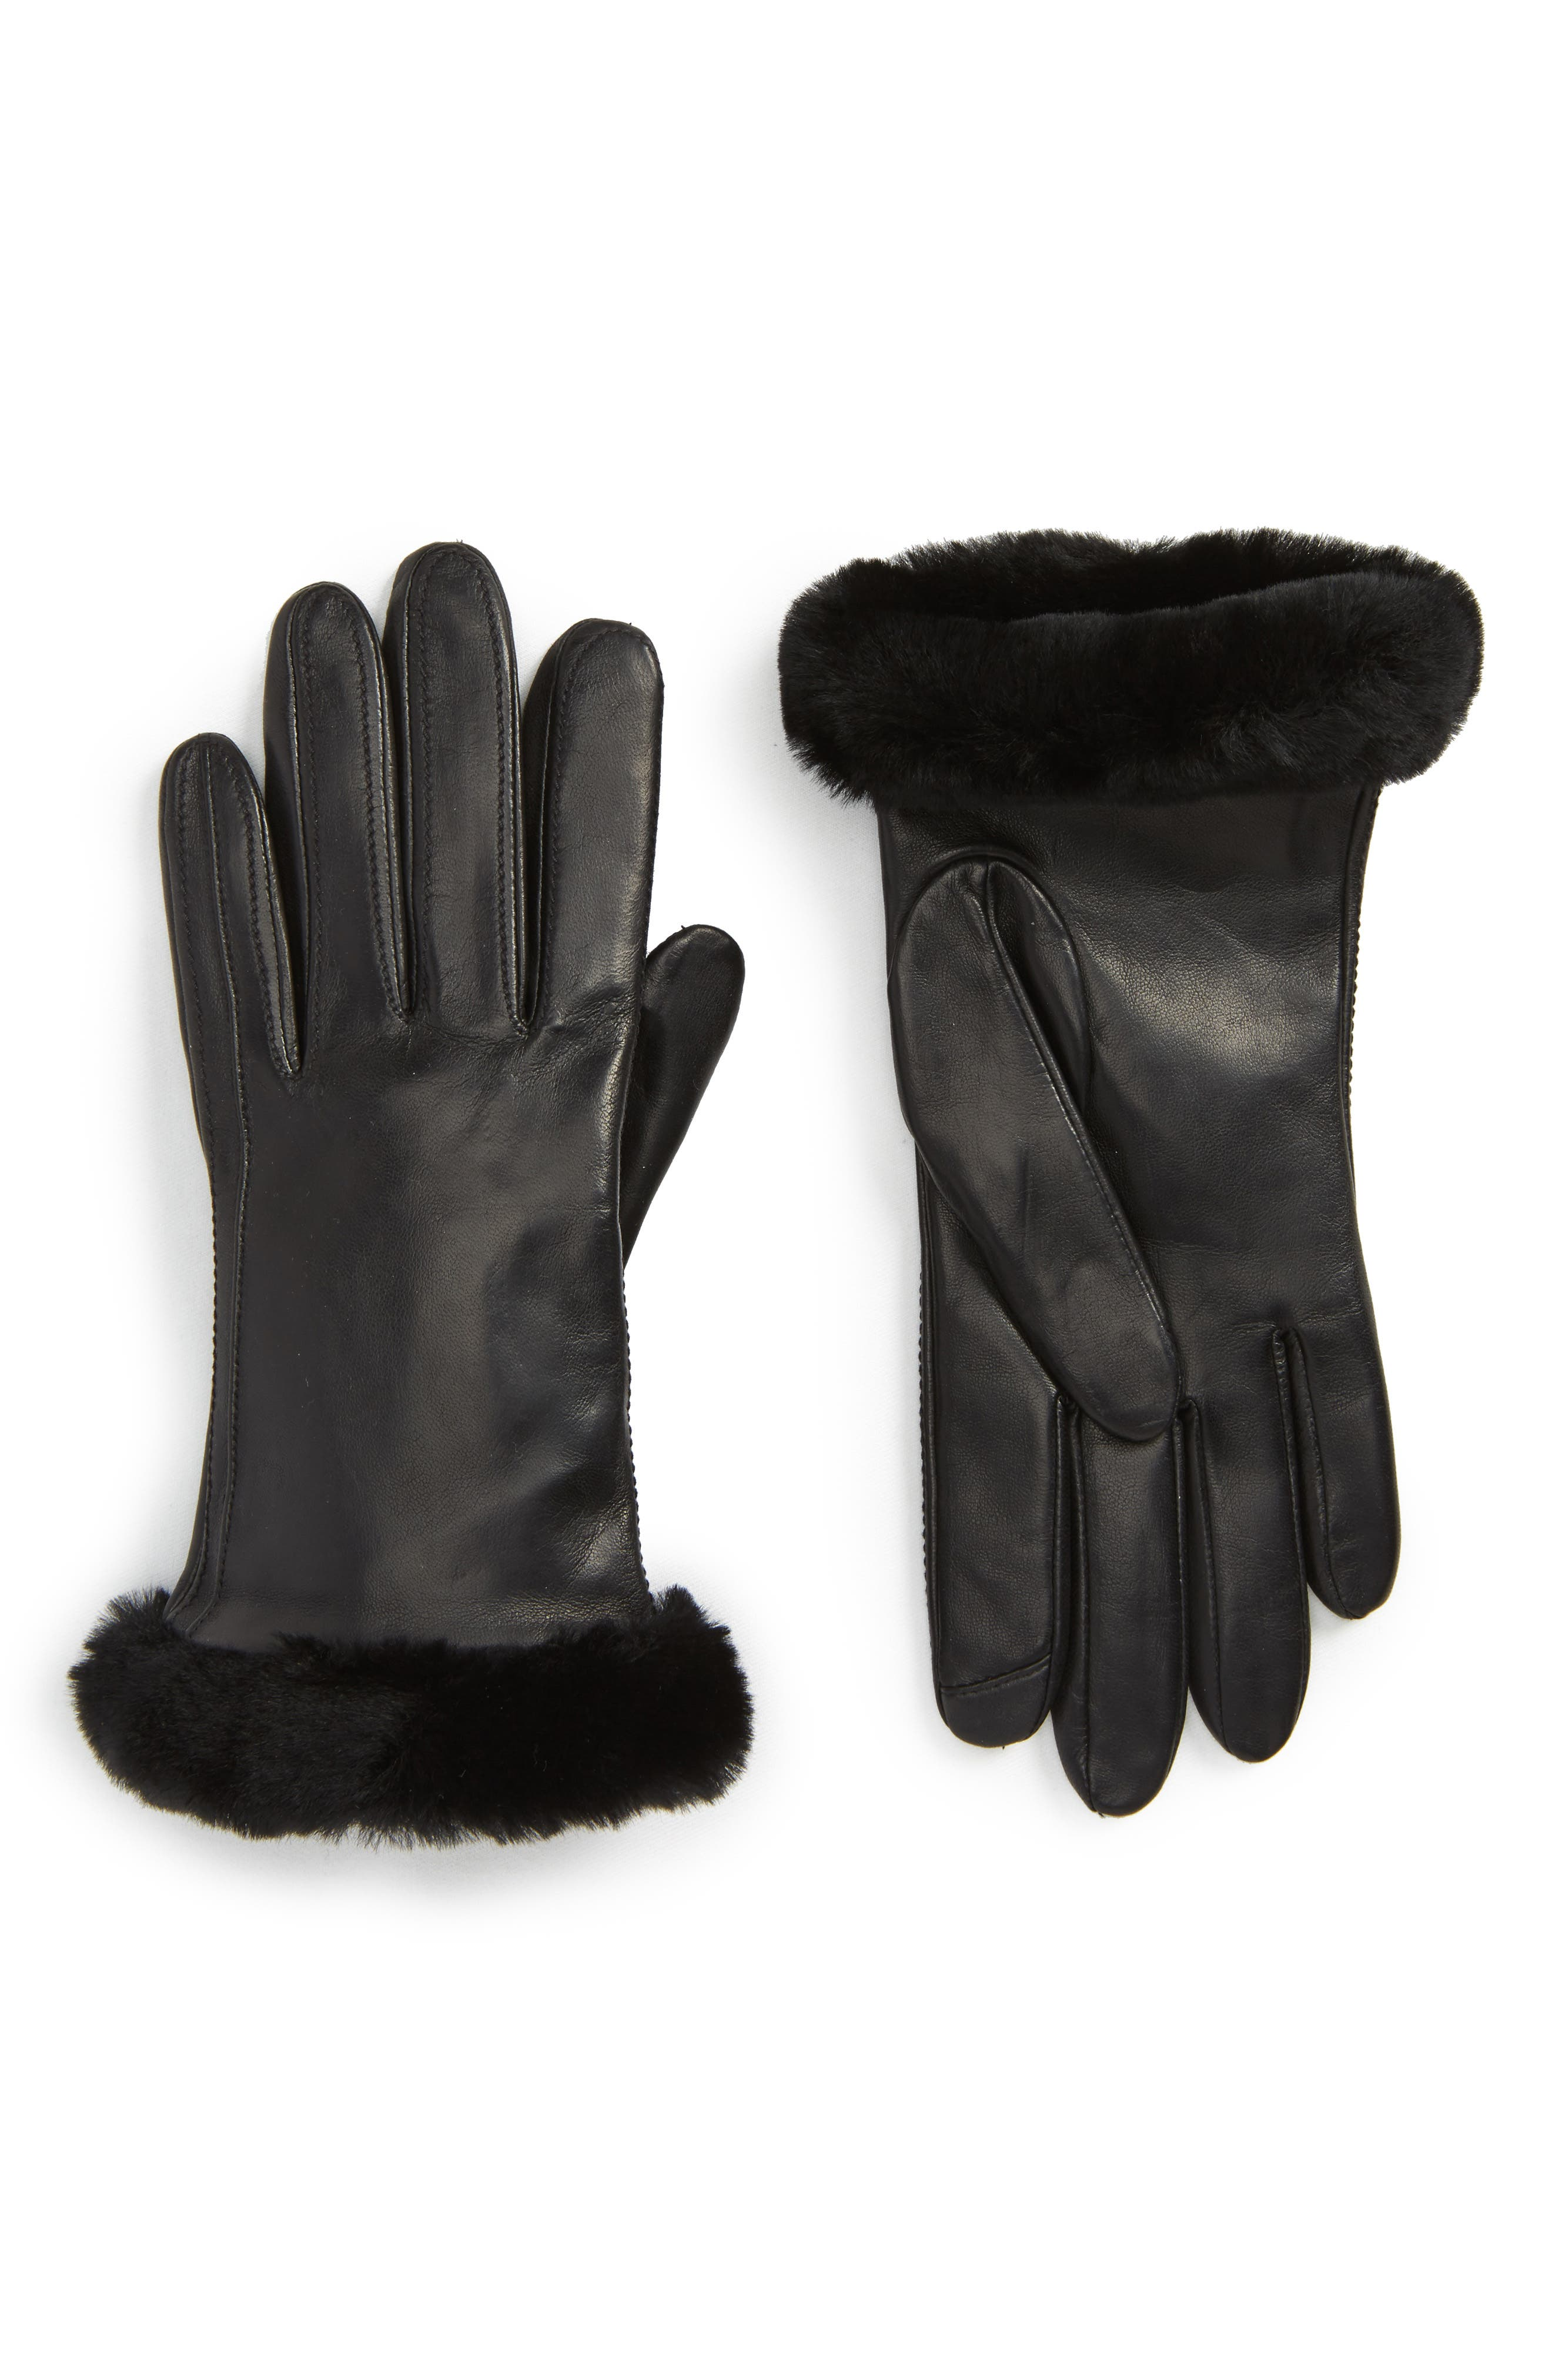 UGG<sup>®</sup> Classic Leather Tech Gloves with Genuine Shearling Trim,                             Main thumbnail 1, color,                             Black